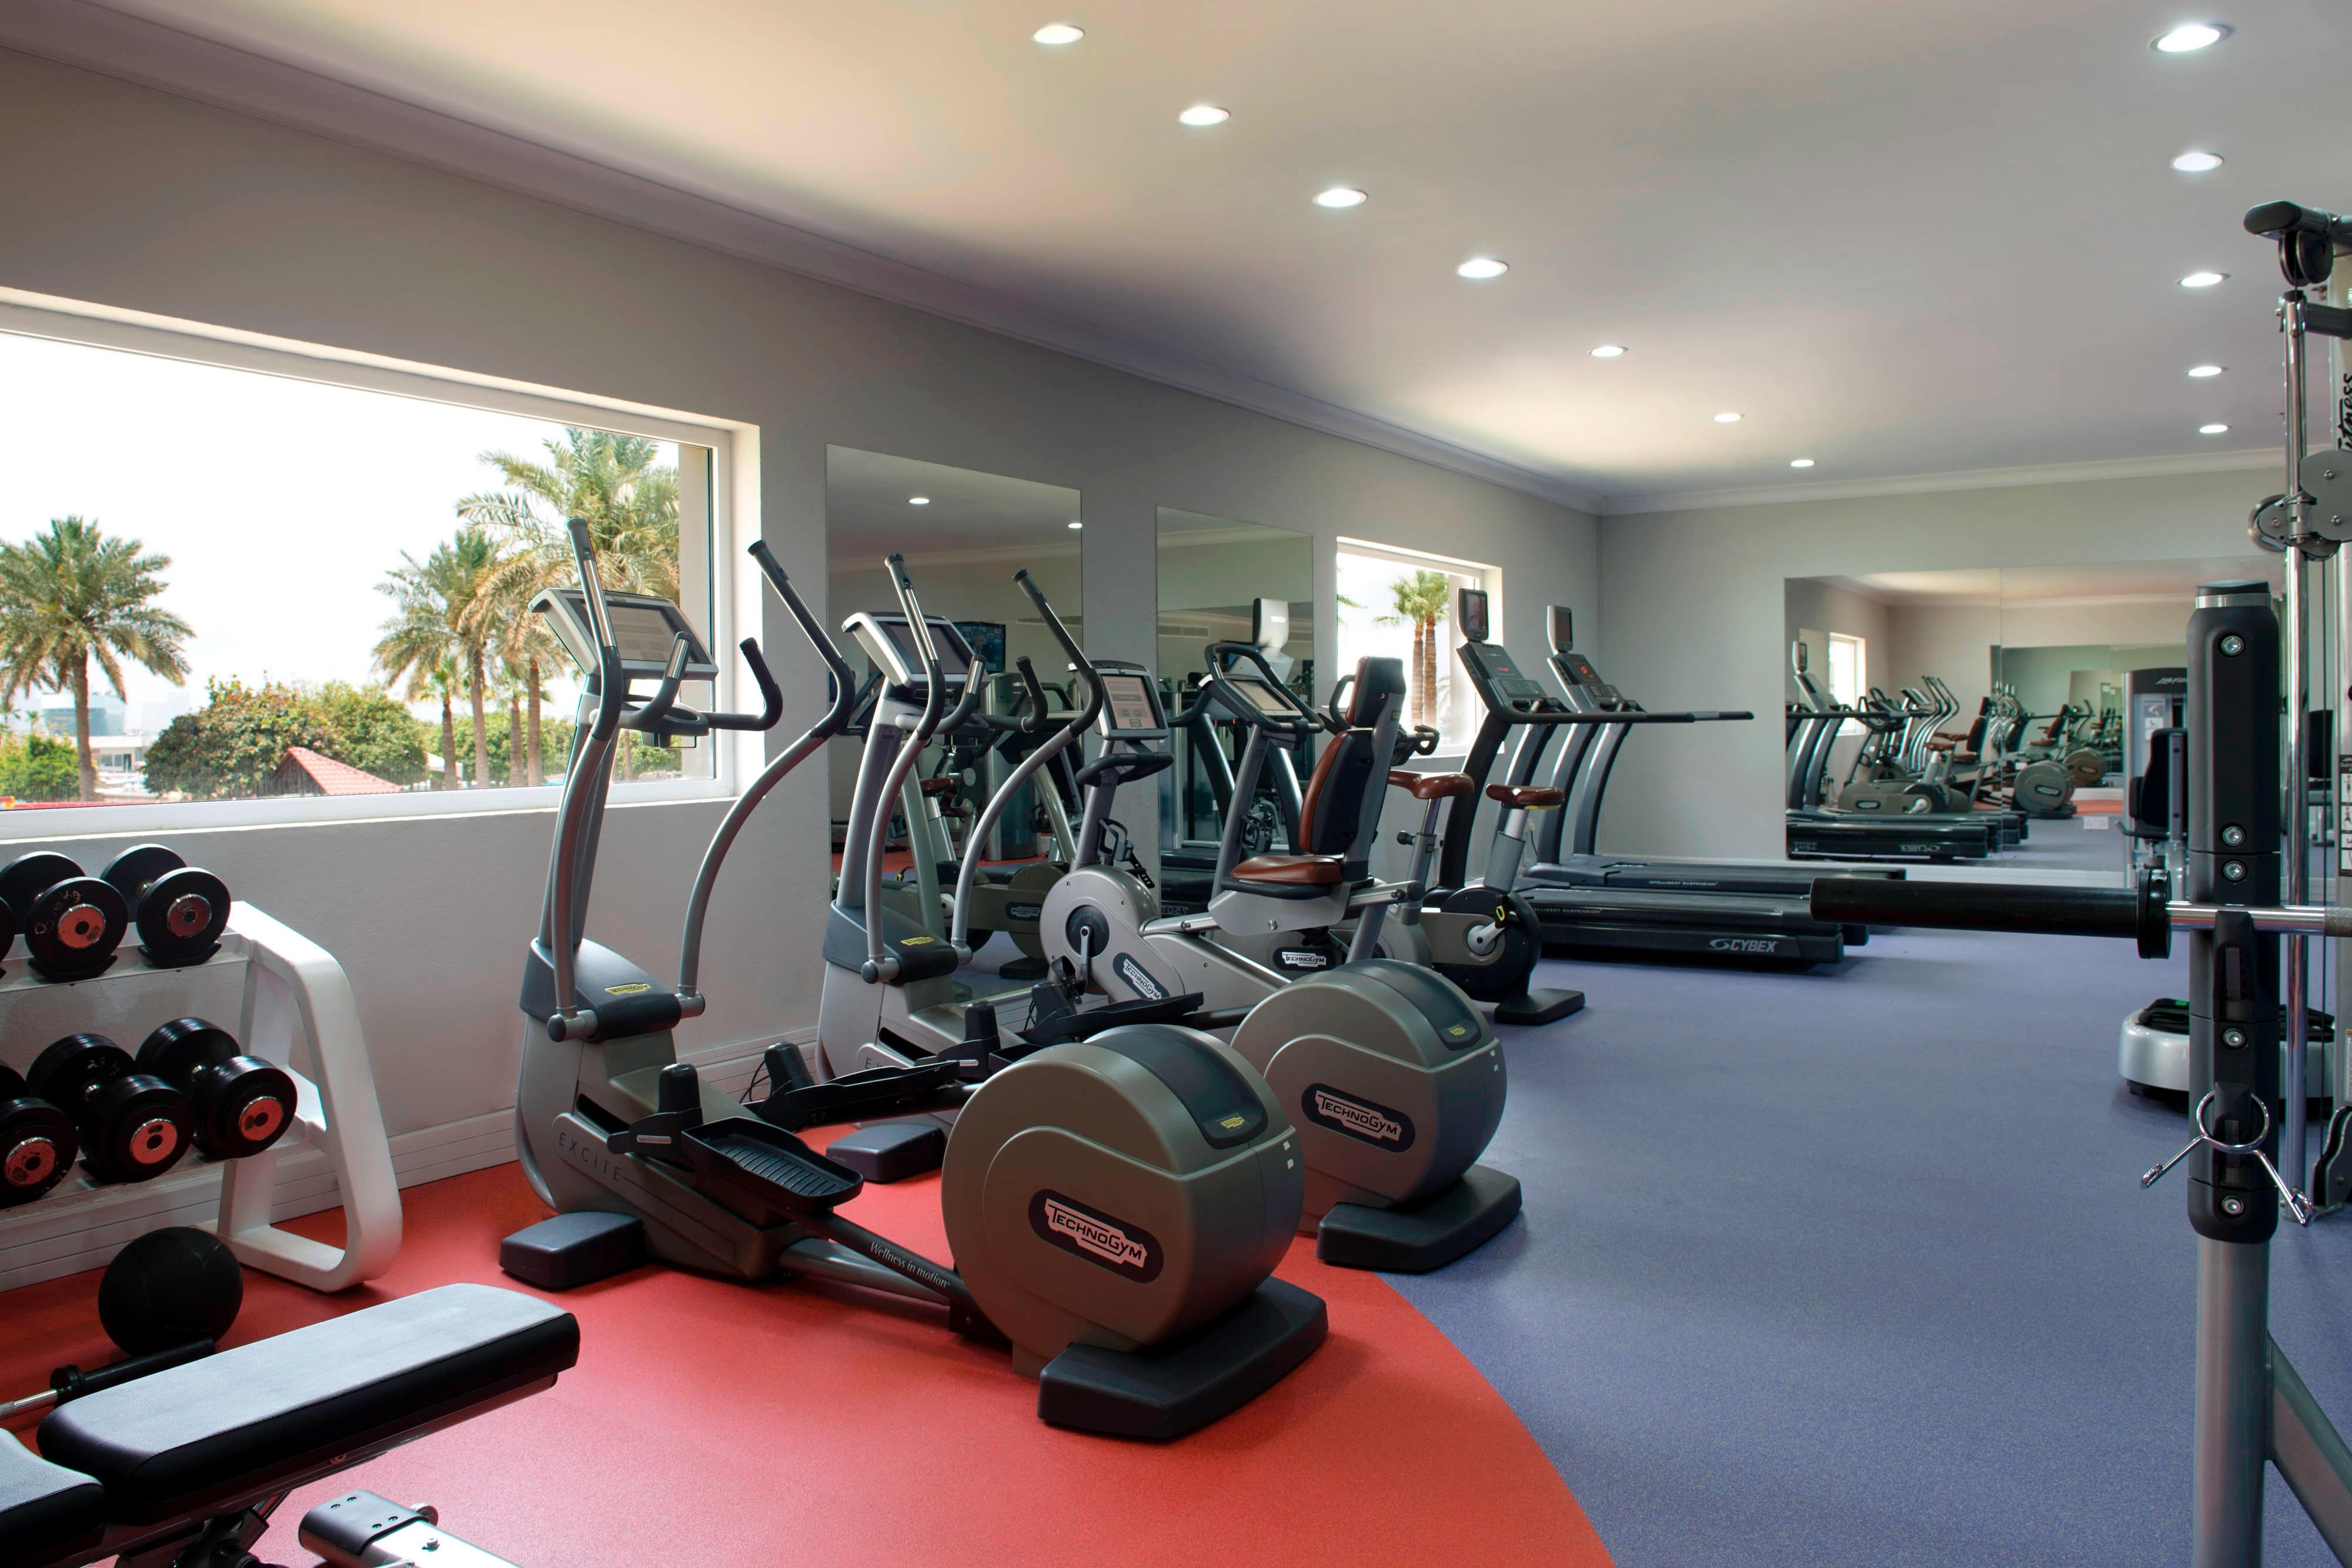 Doha Marriott Gym - Cardio